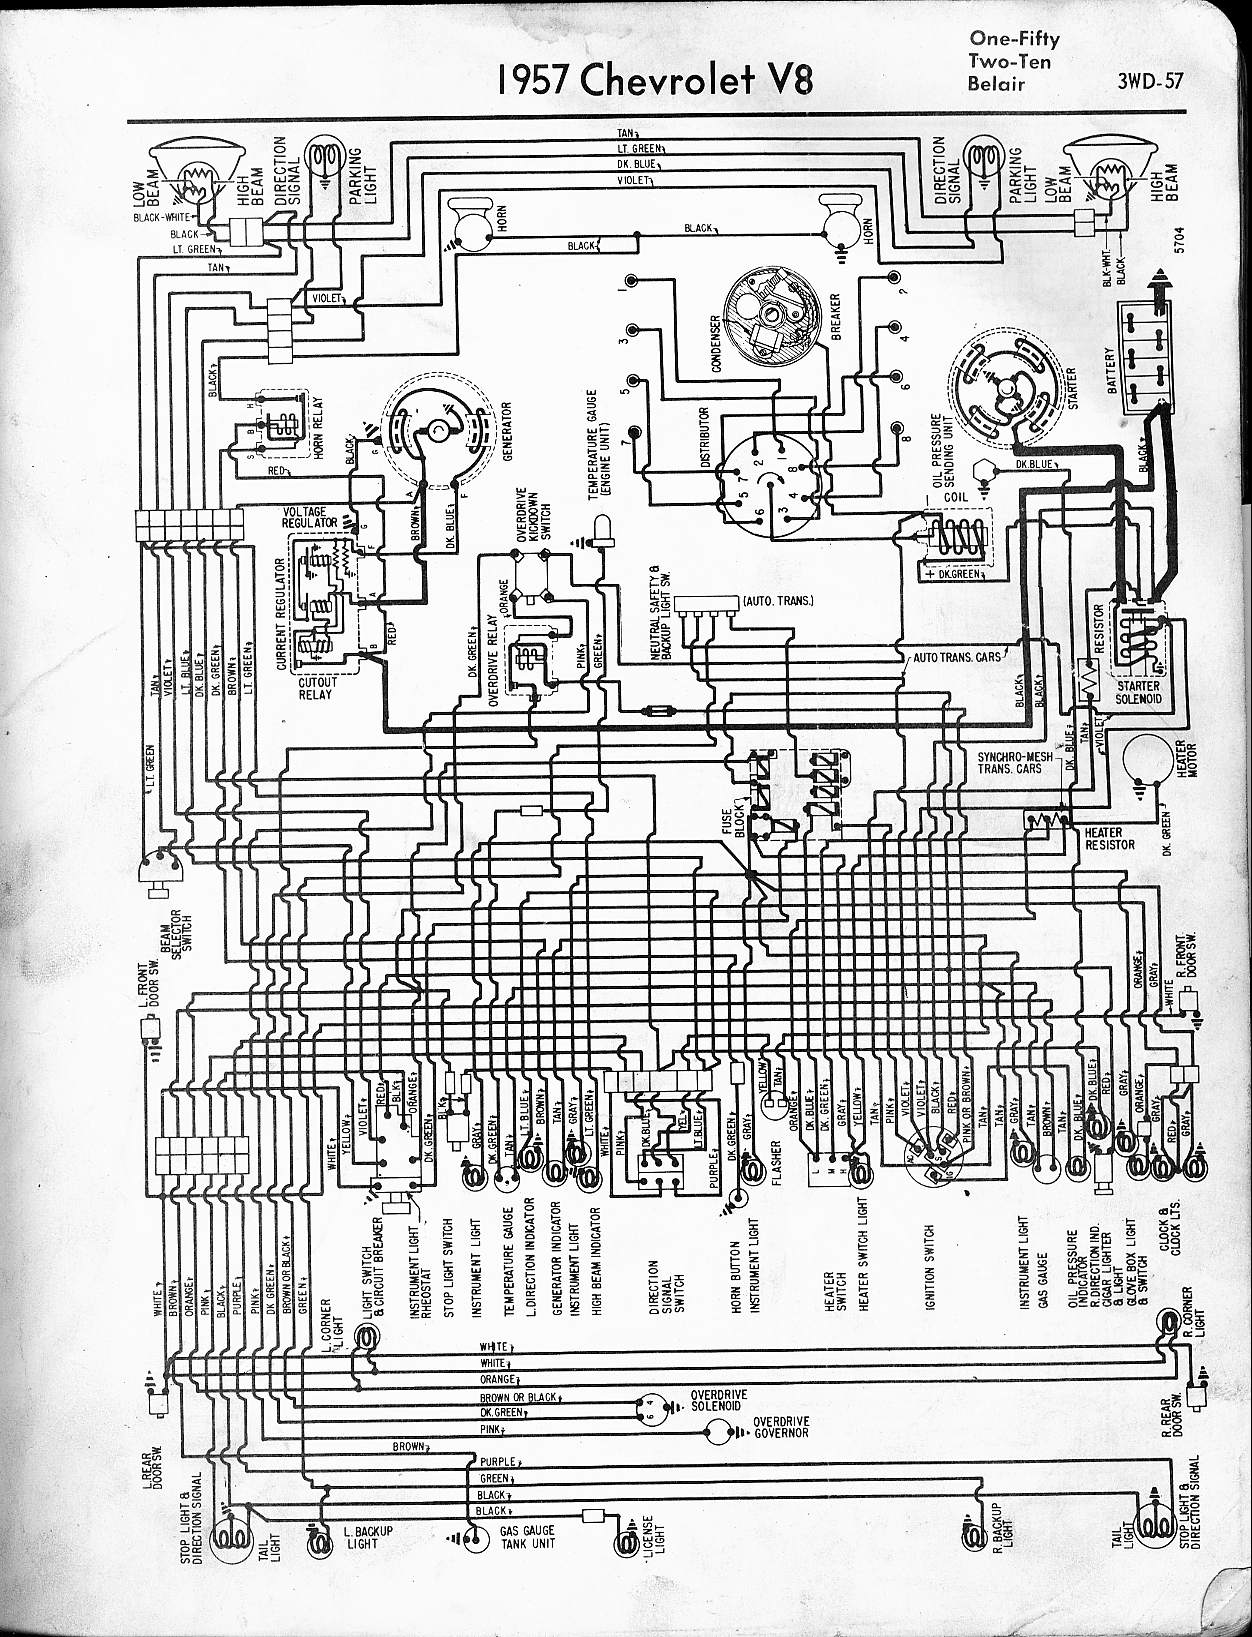 1957 Chevrolet Bel Air Wiring Diagram Diagrams Bugeye Sprite 57 65 Chevy 210